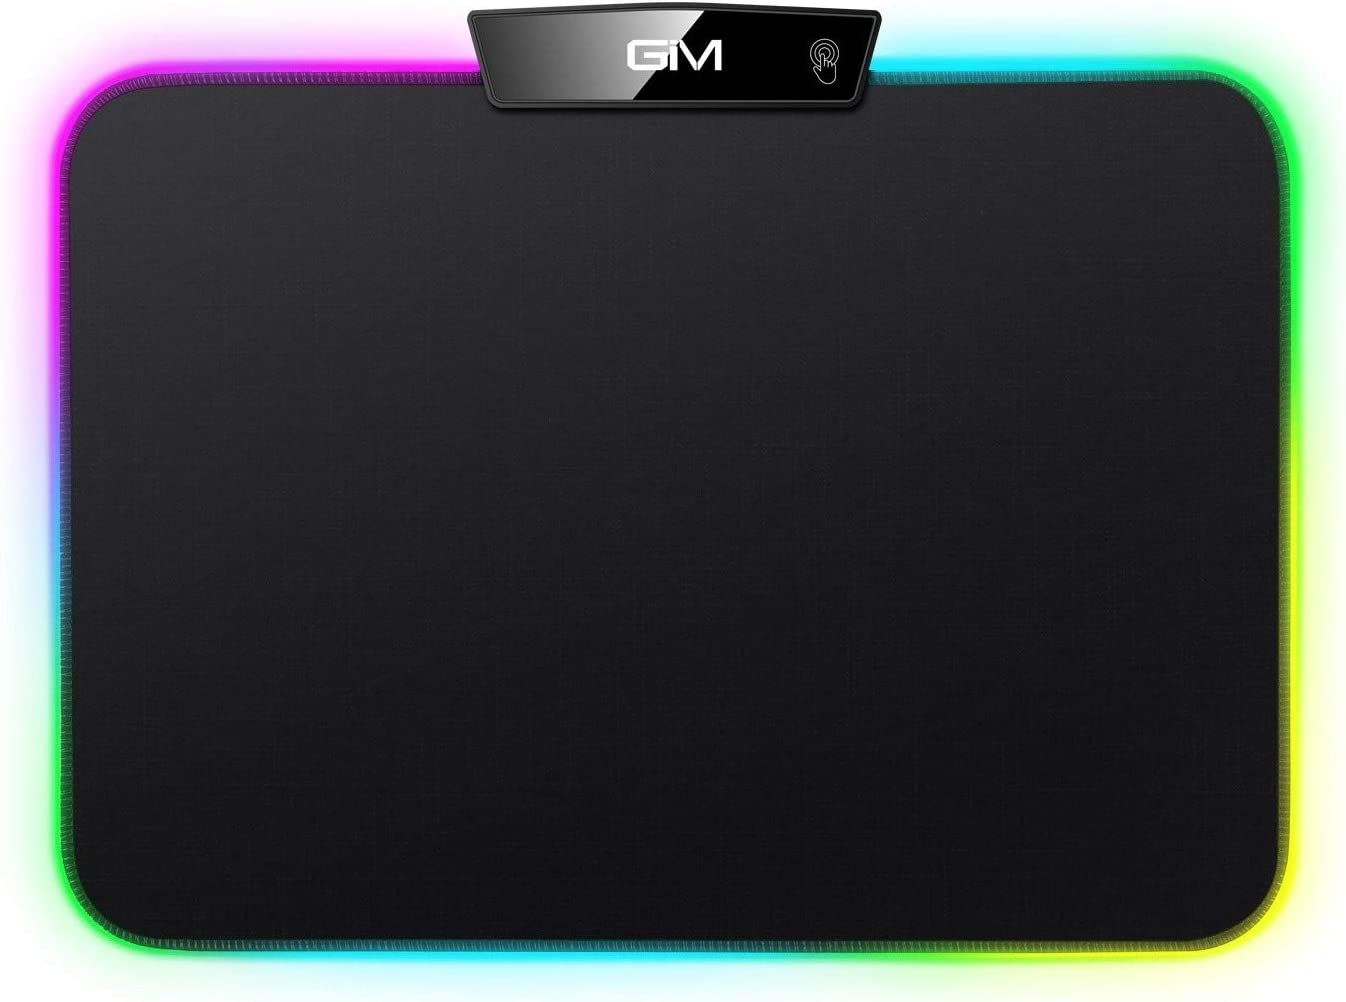 RGB LED Gaming Mouse Pad,GIM LED Mouse Pad Mad with 15 Lighting Modes, Non-Slip Rubber Base USB Computer Mousepad for Gamer,Office and Home(13.8 x 9.8 x 0.2 Inch)